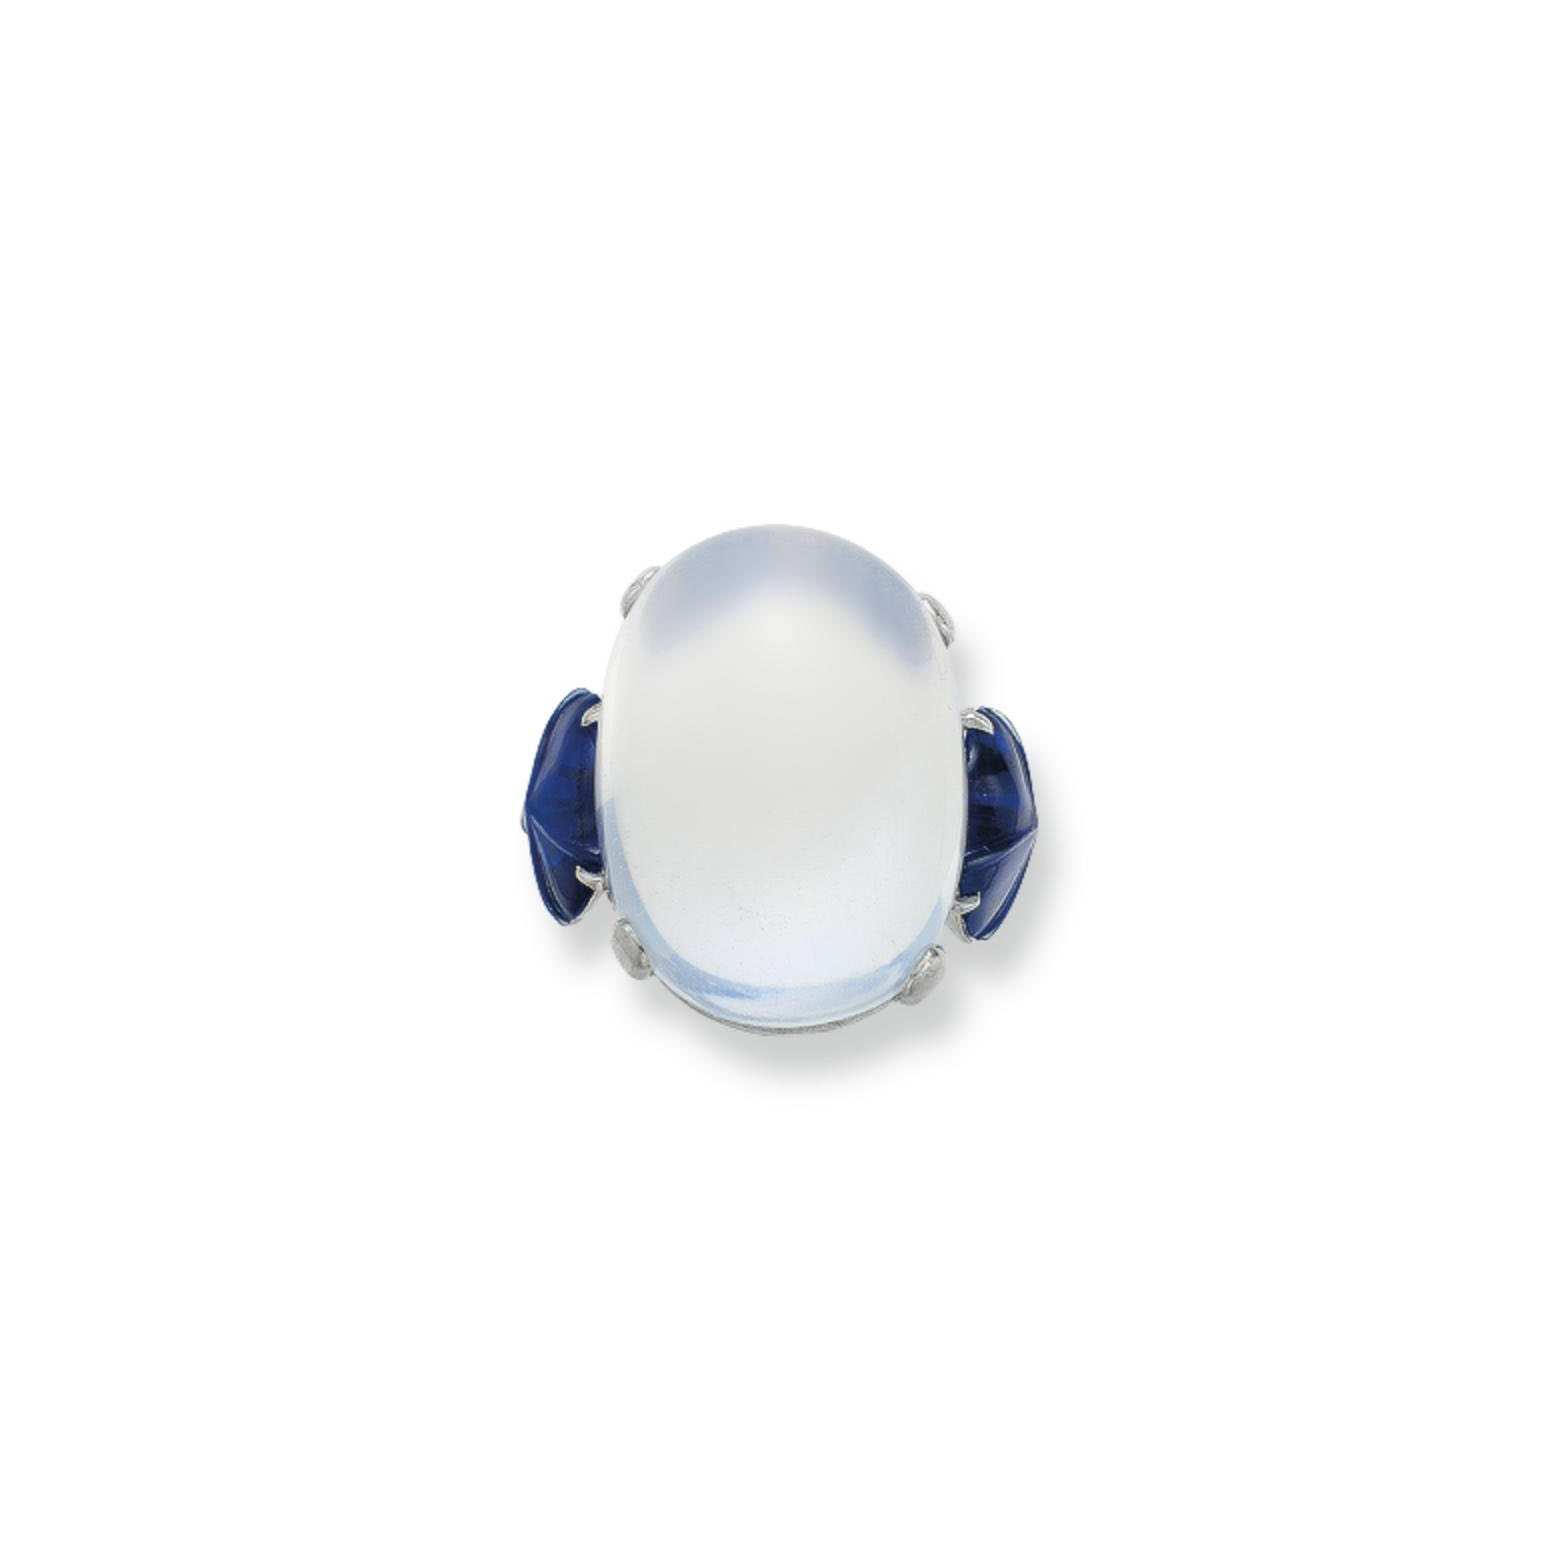 A MOONSTONE AND SAPPHIRE RING, BY MARCUS & CO.